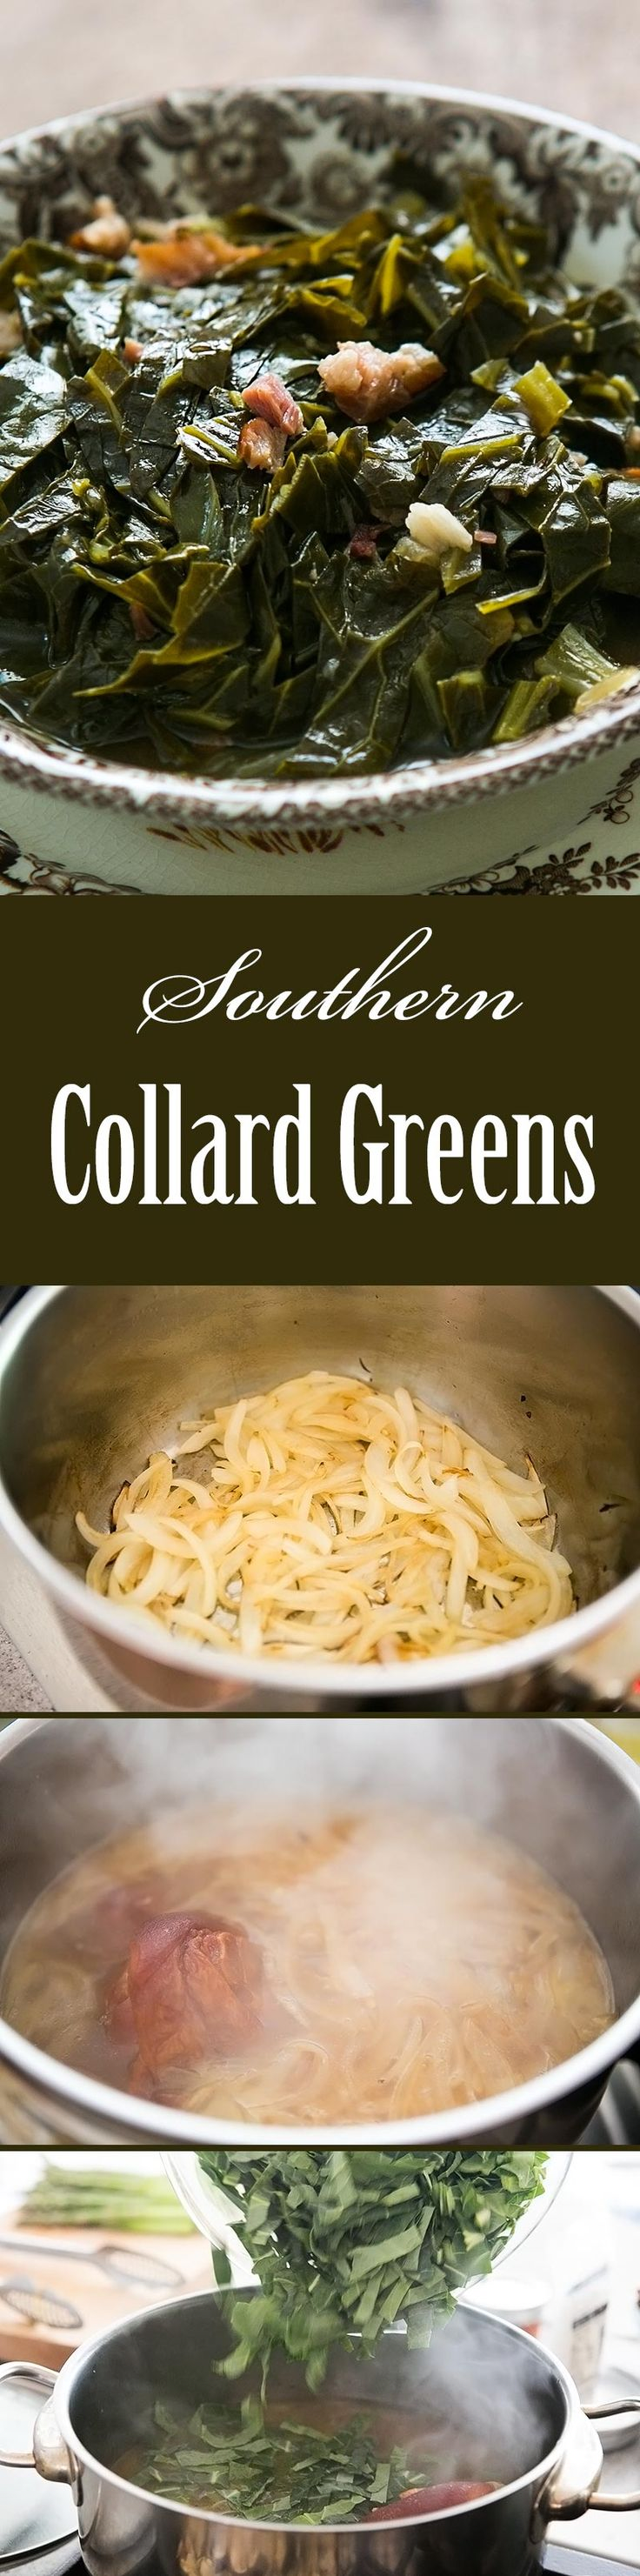 Southern Style Collard Greens! Slow cooked collard greens with a ham hock, onions, vinegar and hot sauce. A classic with BBQ! #Healthy On SimplyRecipes.com | https://lomejordelaweb.es/